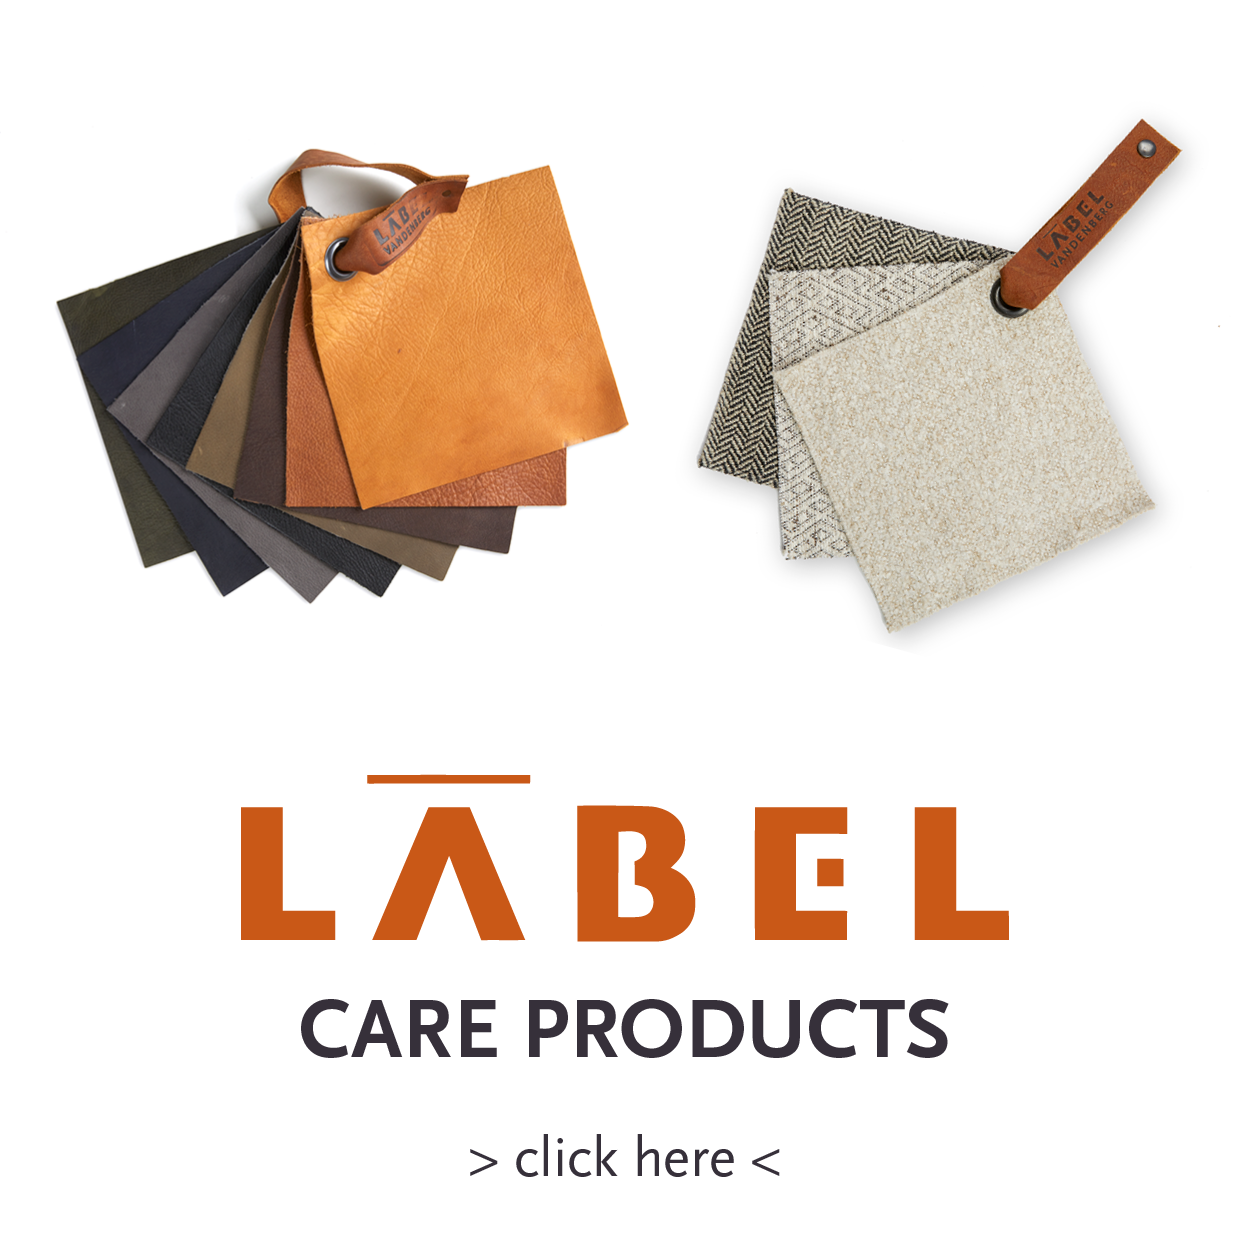 LABEL Careproducts